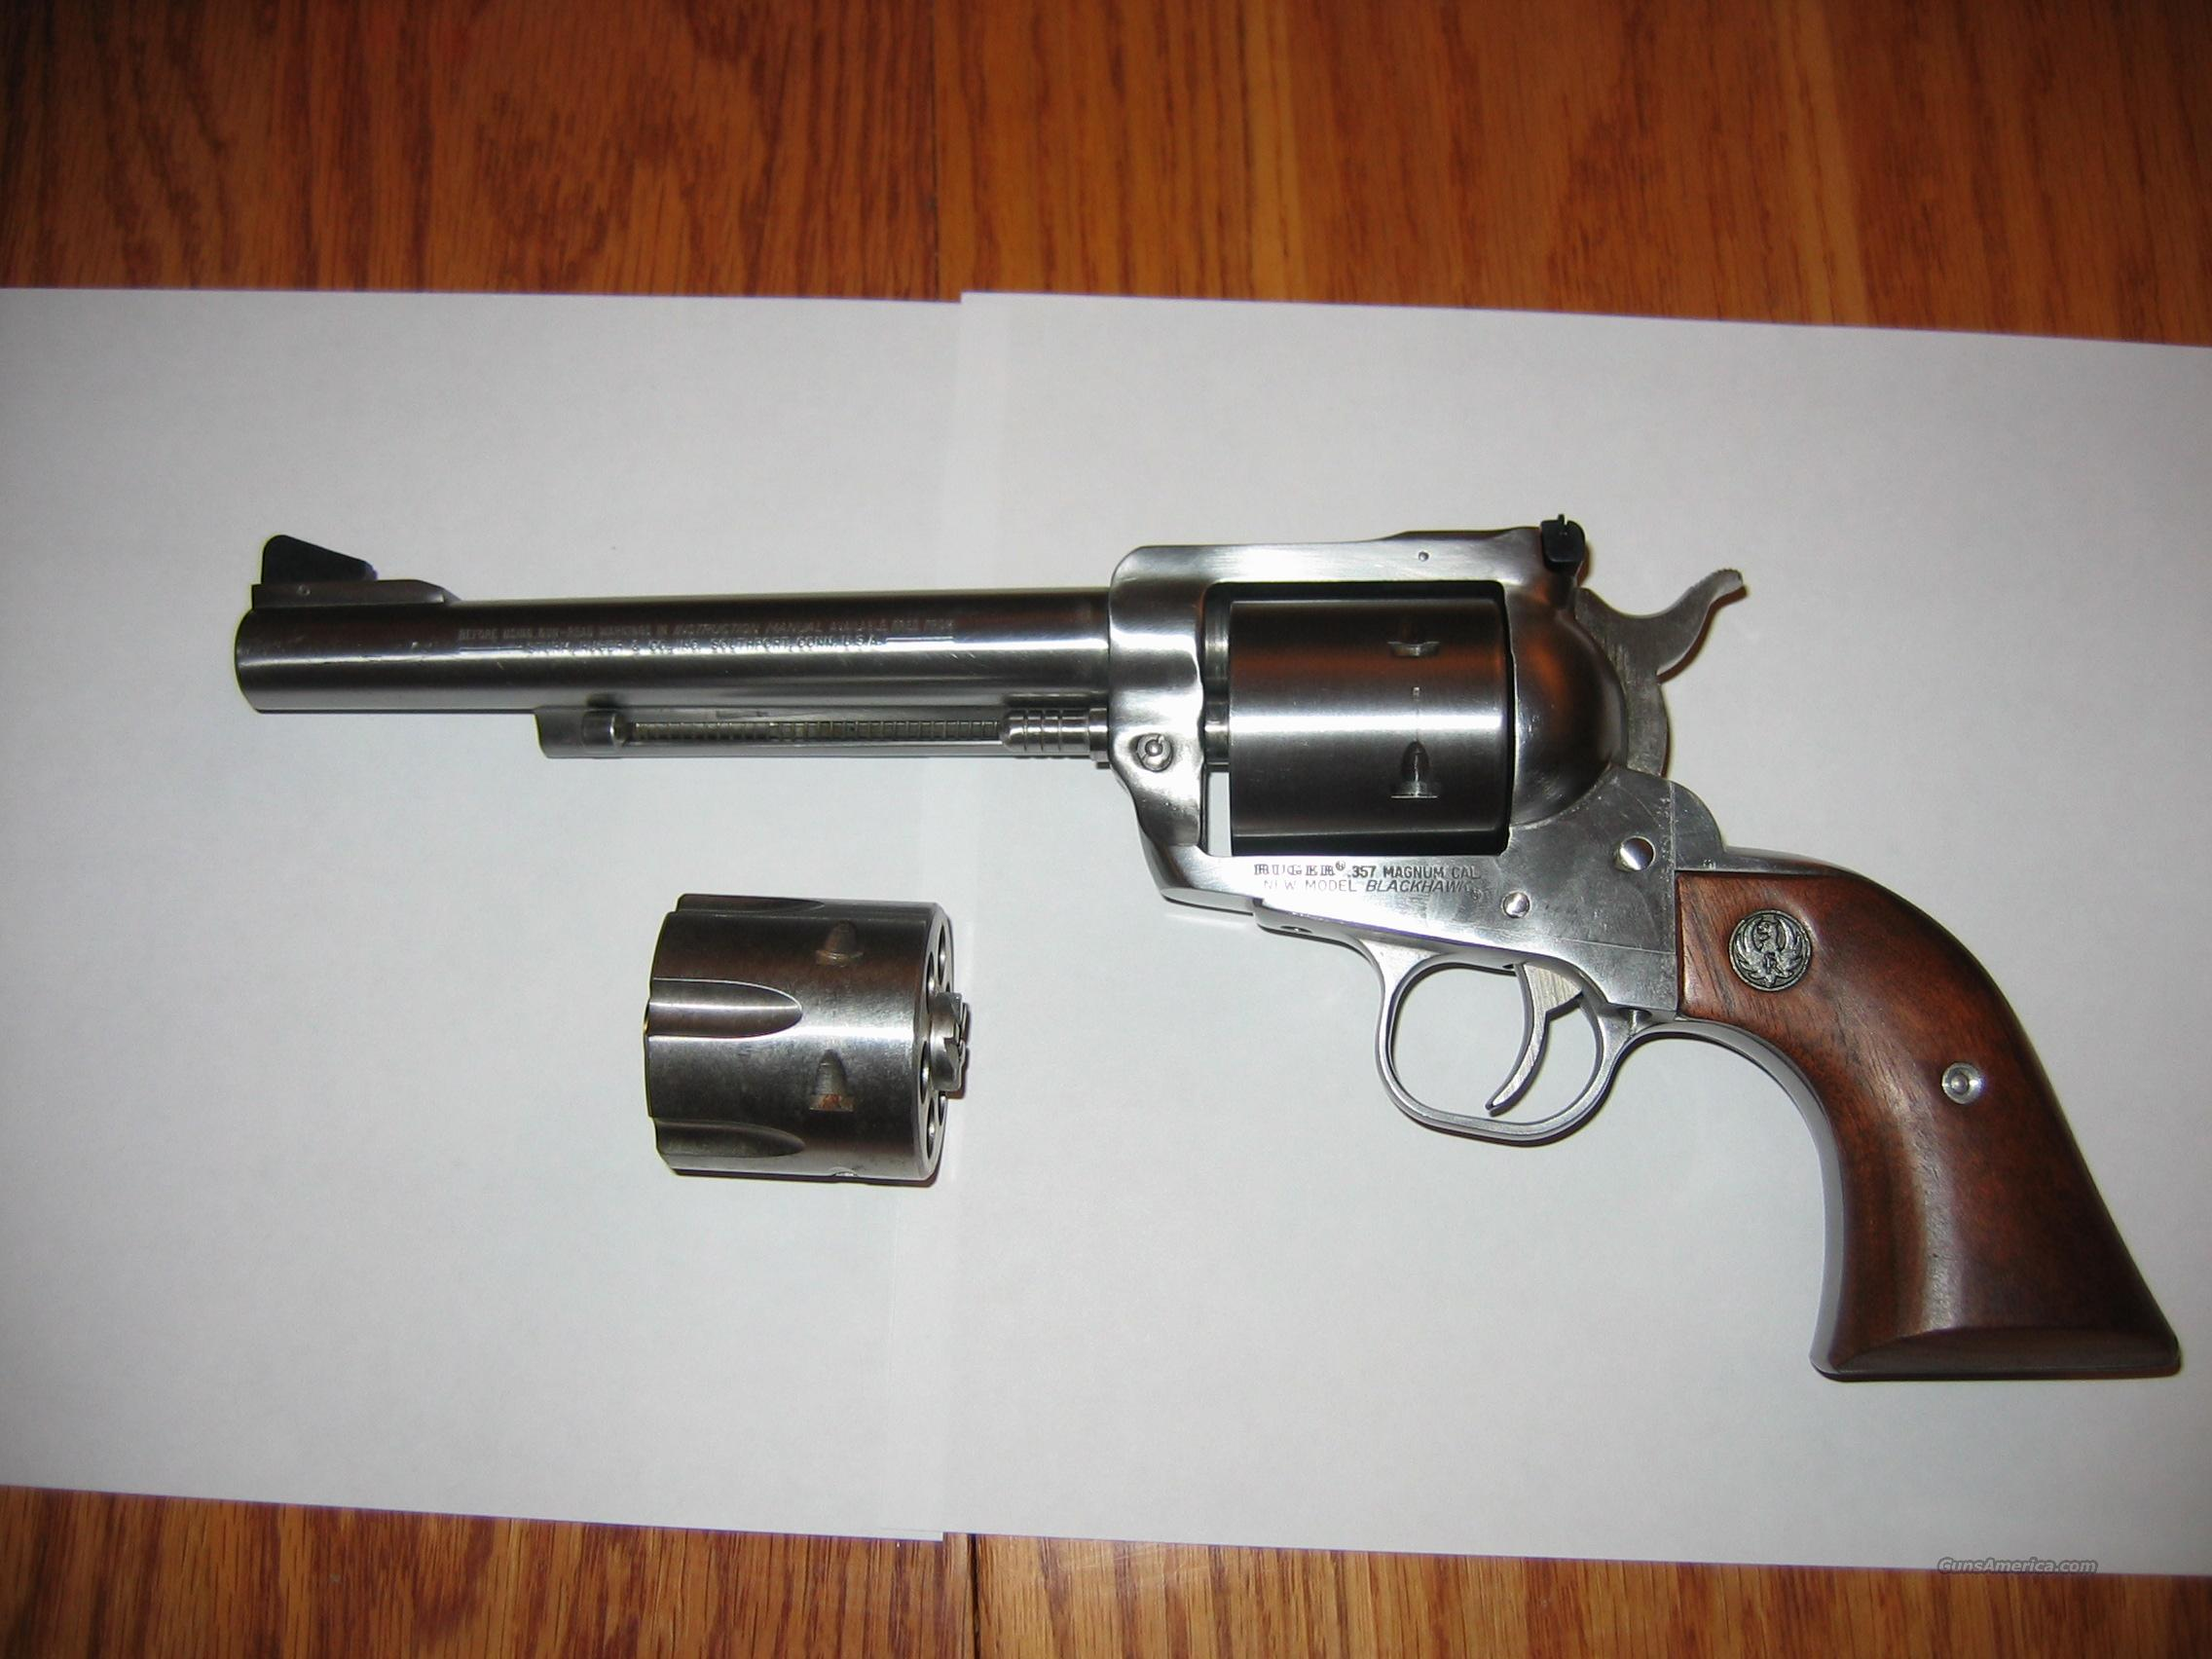 SS Ruger Blackhawk w/ Phillips & Rodgers Cylinder  Guns > Pistols > Ruger Single Action Revolvers > Blackhawk Type